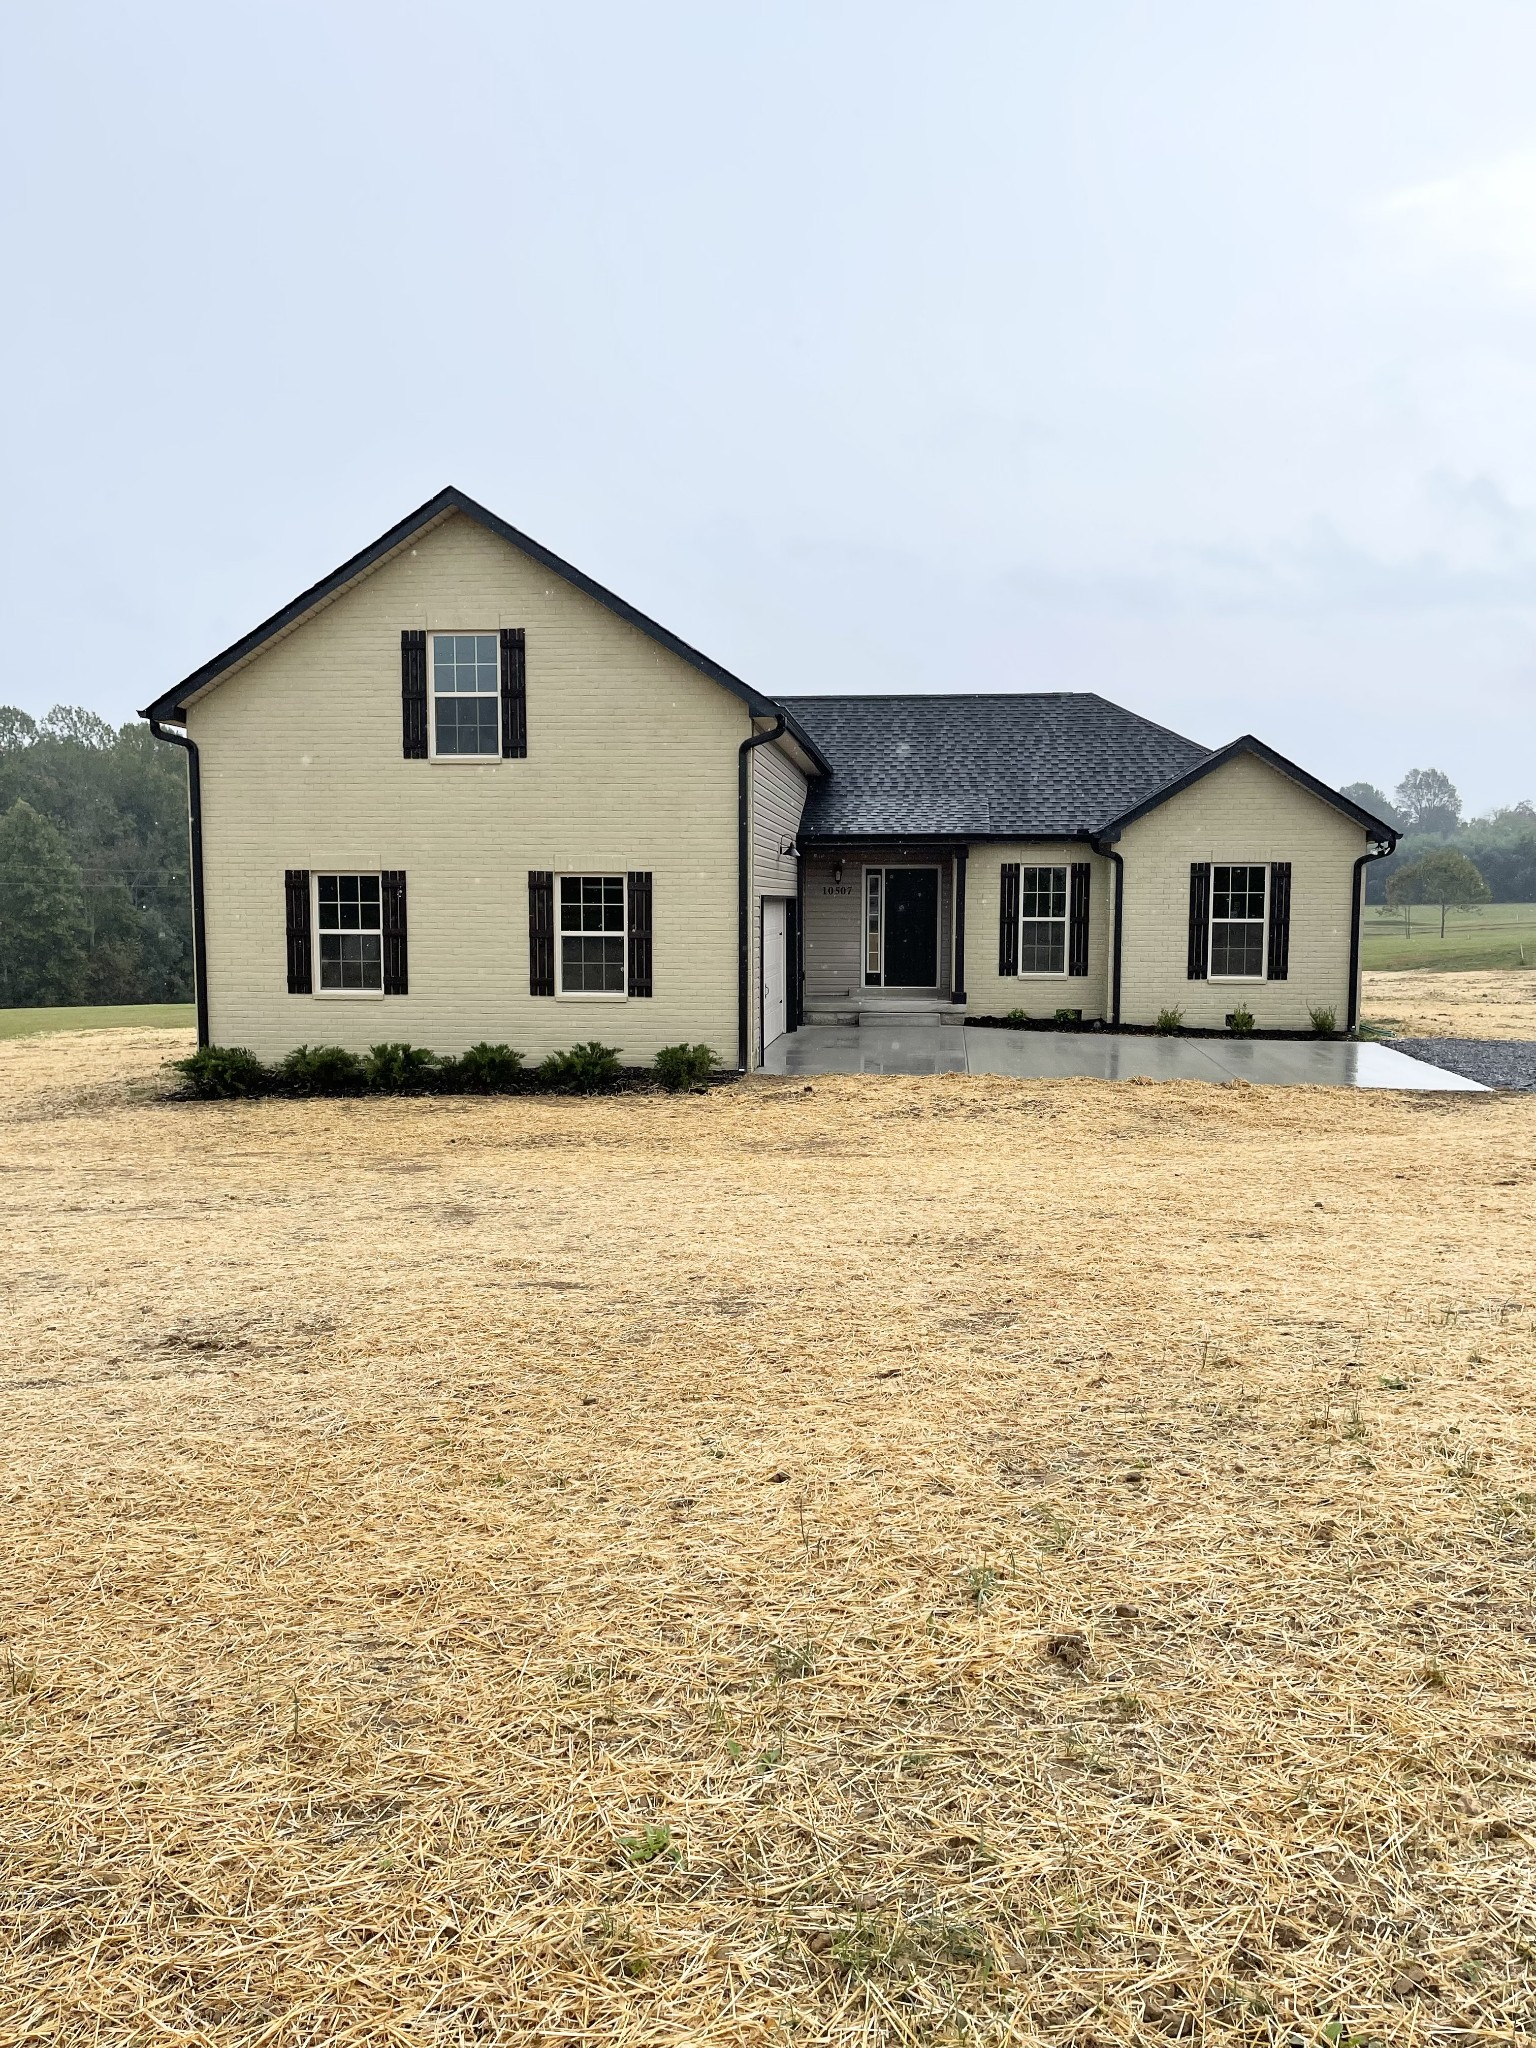 Spectacular views!! This beautiful brand new home sits on over 2 acres with the most gorgeous back yard view. This turn key home features two bedrooms, a flex room or an in home office, a huge bonus room with a half bath, beautiful craftsmen style trim, recessed lighting, and much more!